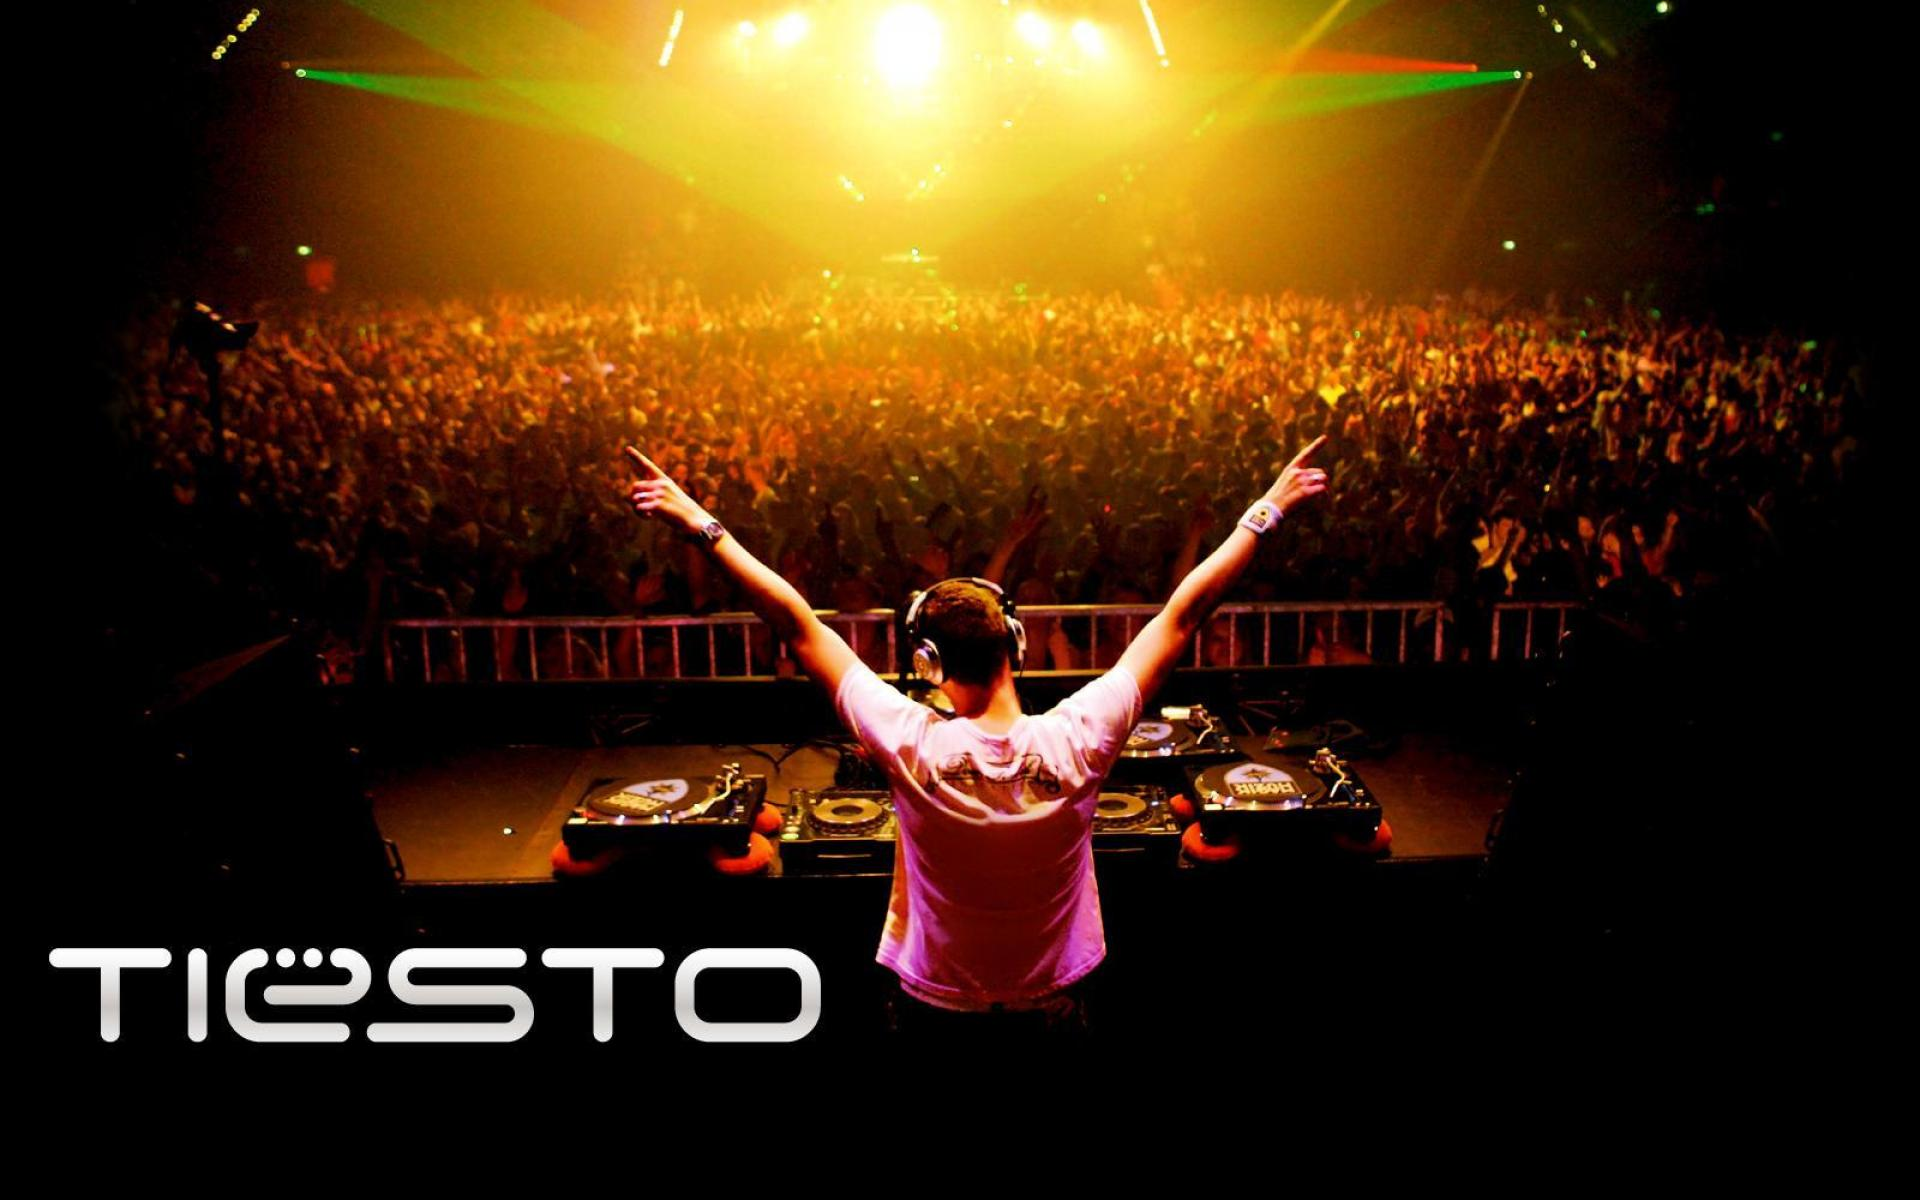 Amazing Tiesto Wallpaper